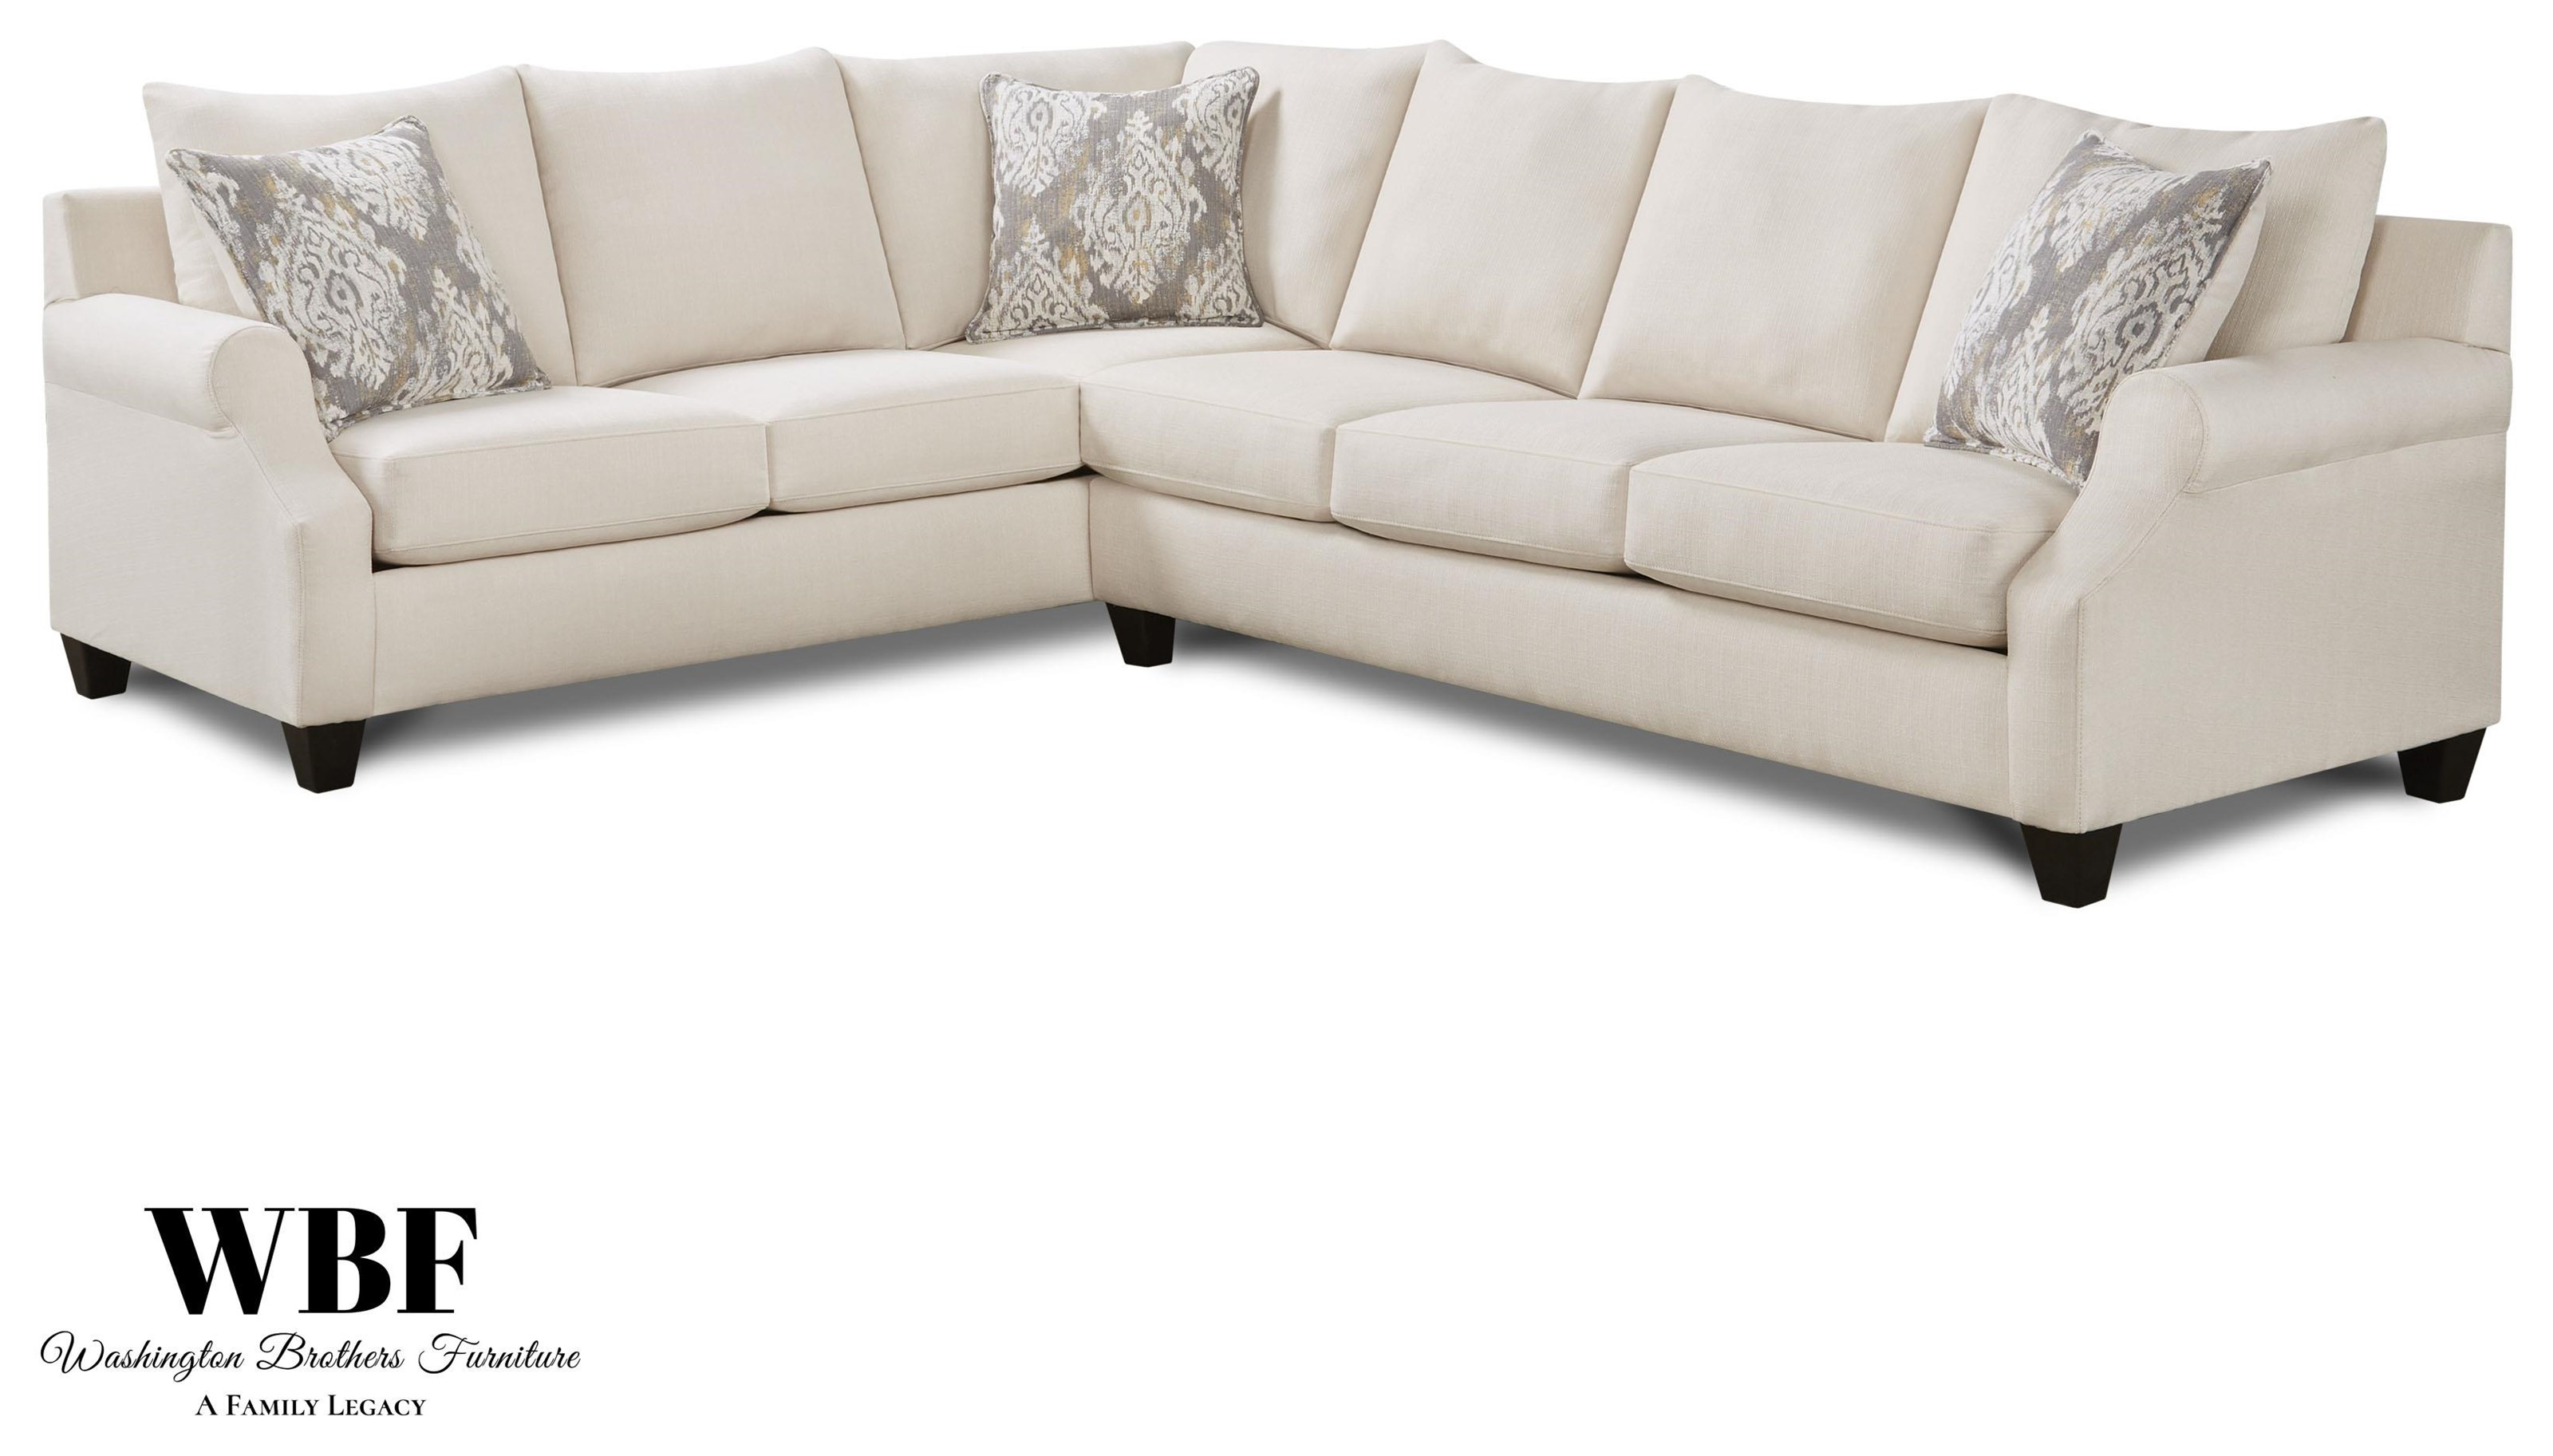 1197 Sectional Two Piece Cream Sectional by Washington Brothers Furniture at Furniture Fair - North Carolina